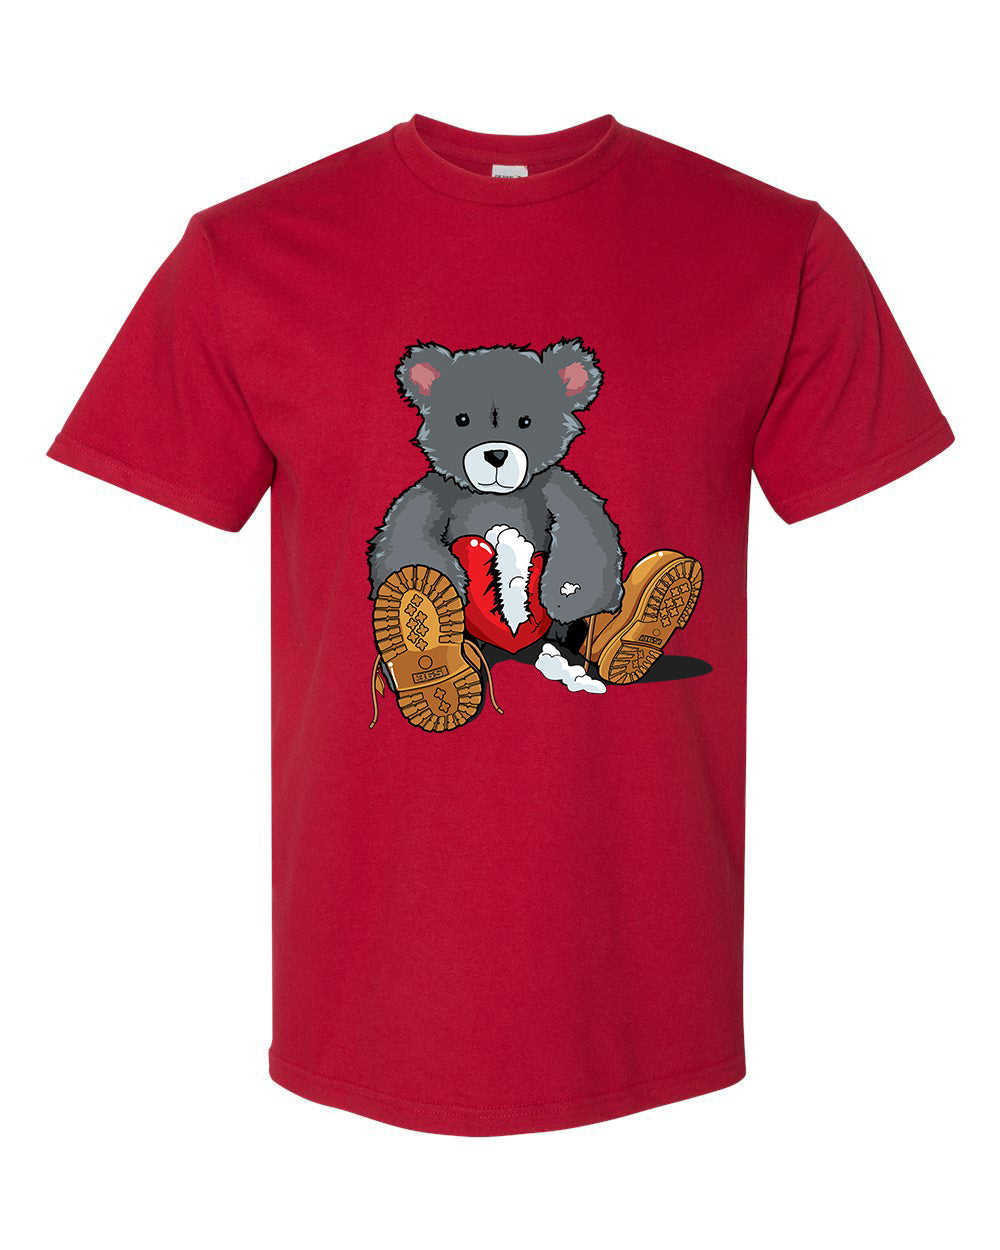 365 Clothing Broken Heart Bear T-Shirt -Red